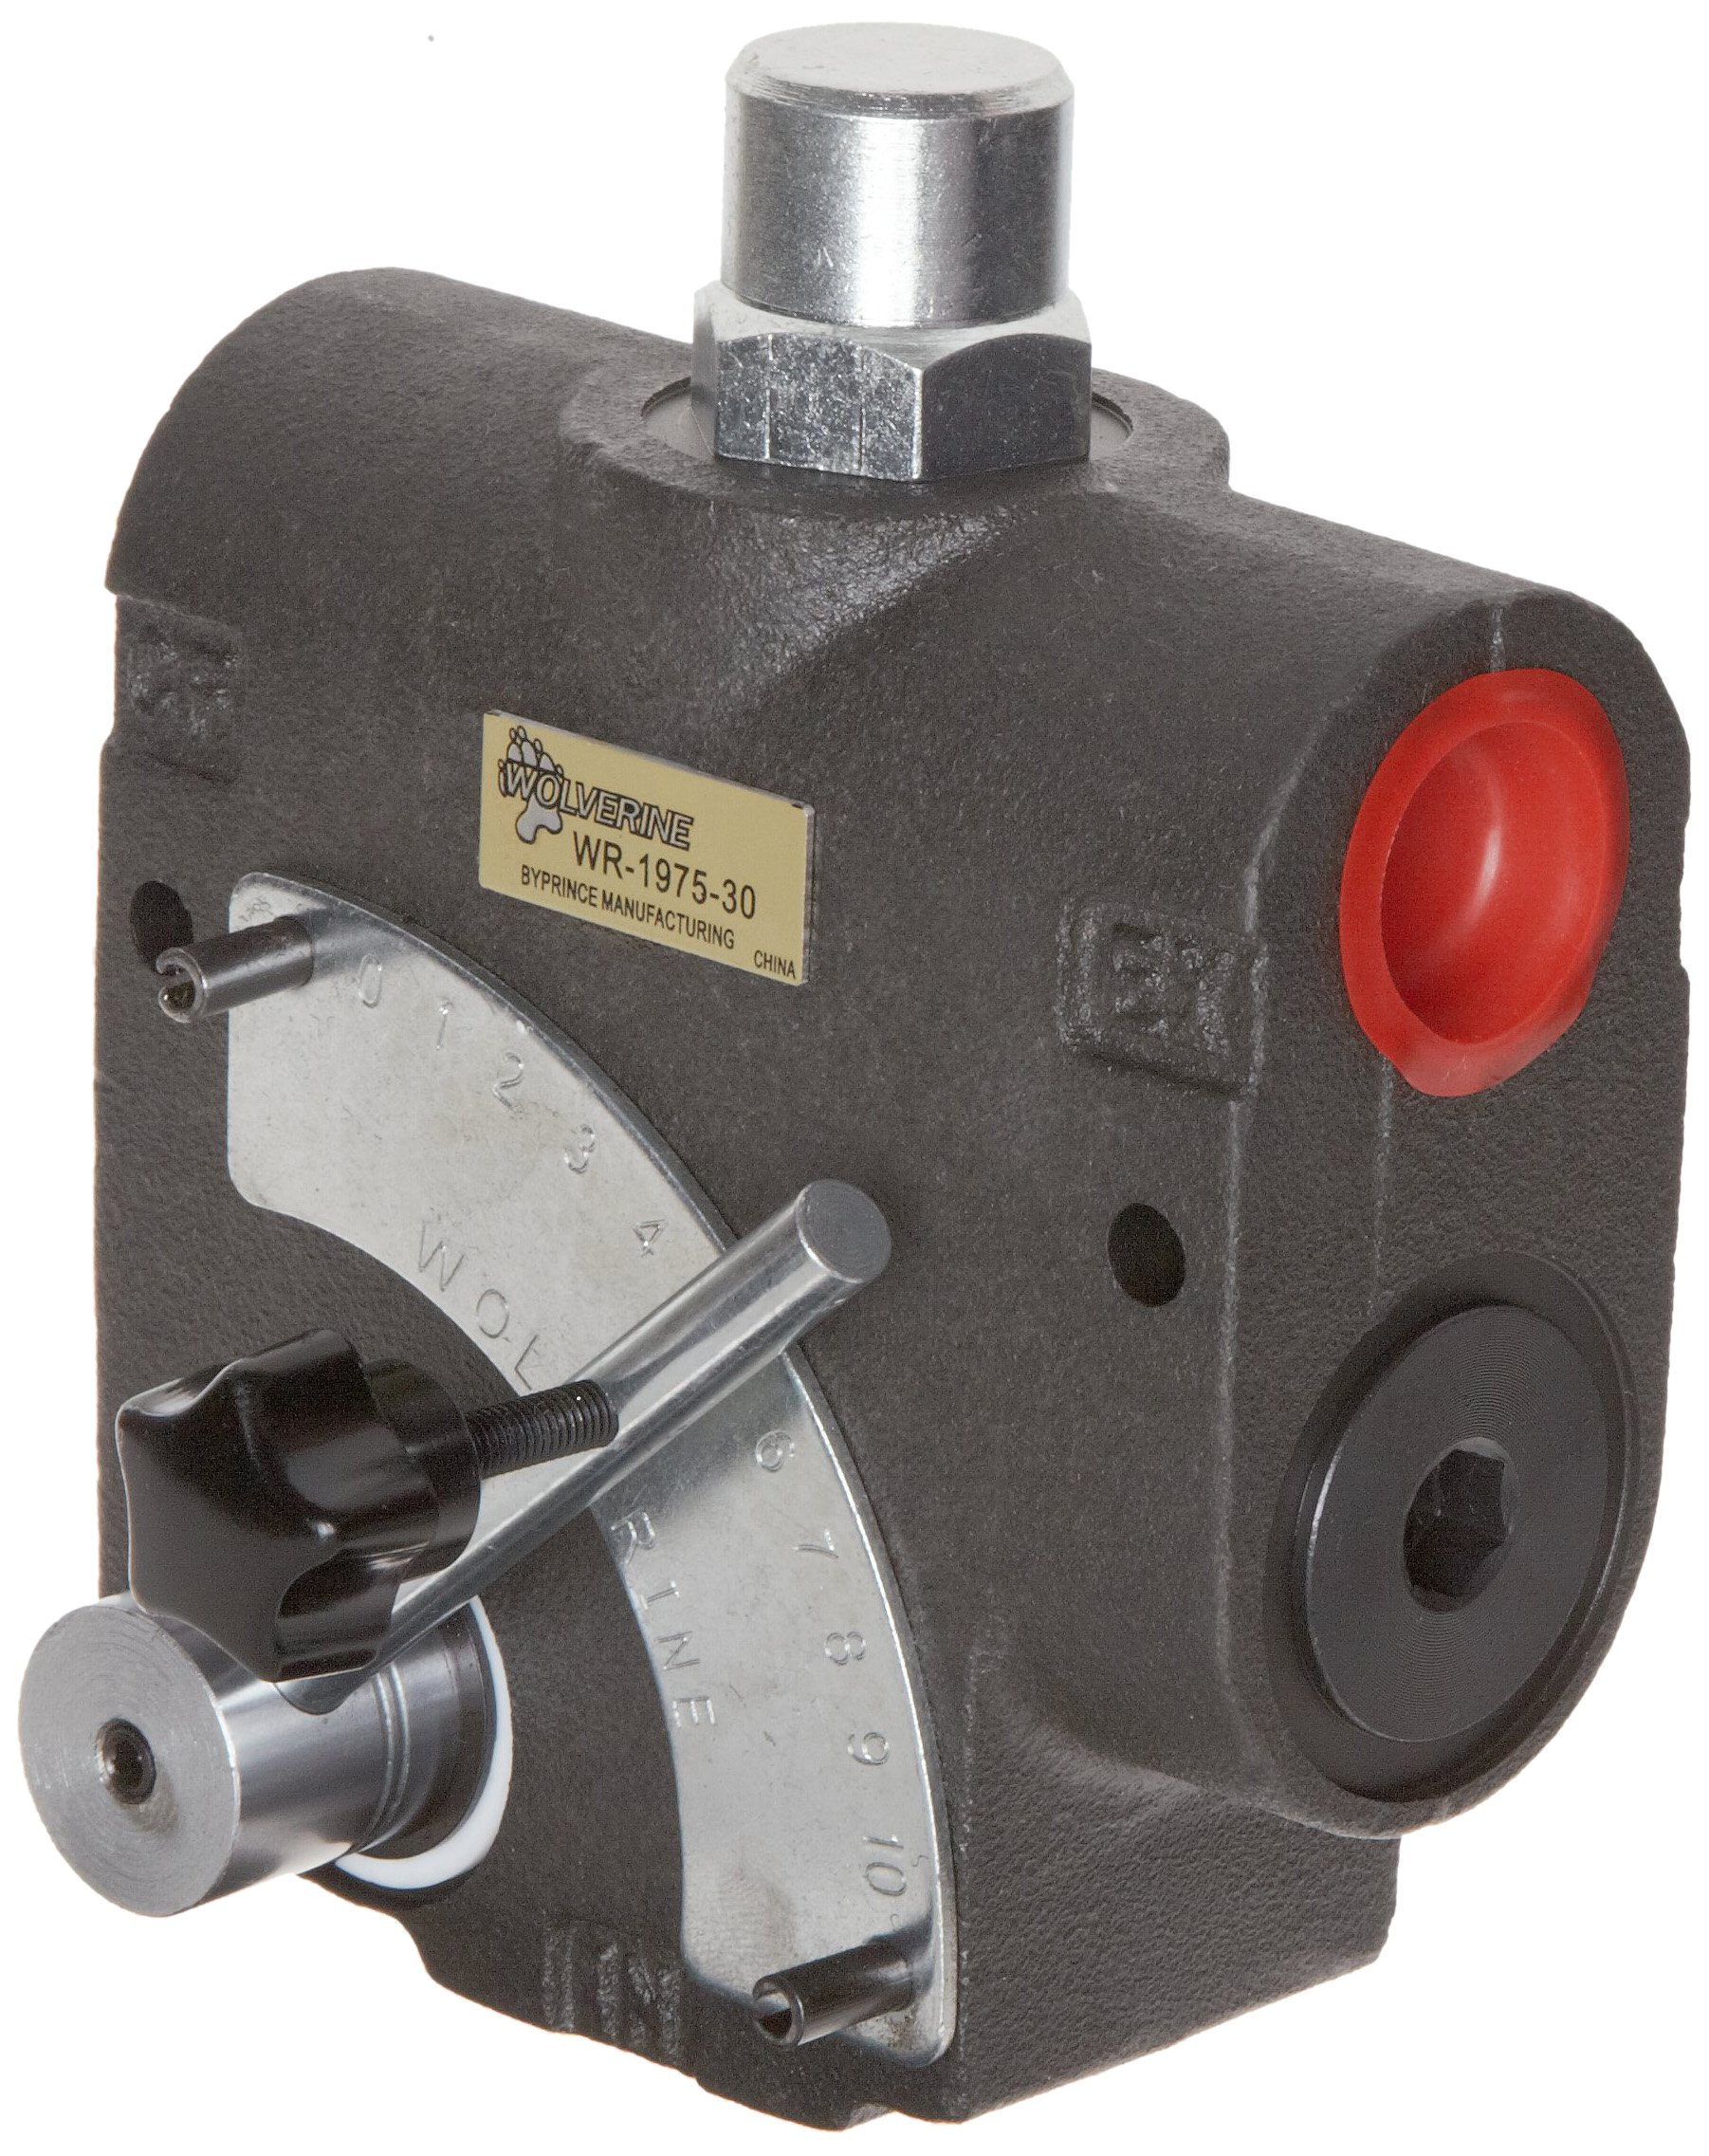 Prince WR-1975-30 Wolverine Adjustible Flow Control Valve with Inlet Relief at 1500 psi, 30 gpm Max Flow, 3/4 NPTF